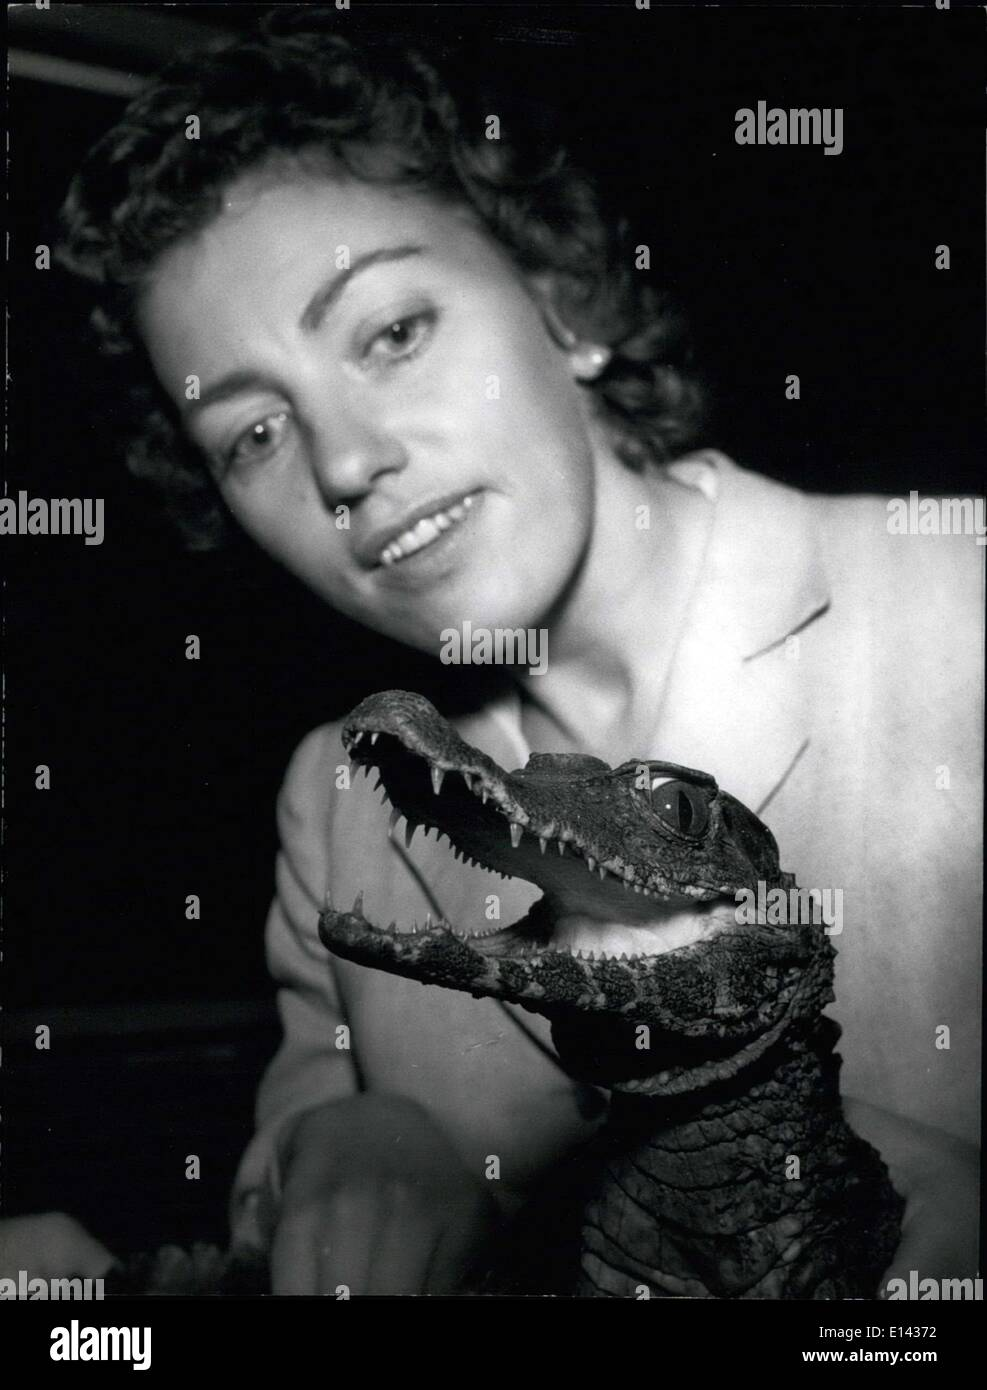 Mar. 31, 2012 - New animals for aquarium of Berlin and Dusseldorf. A rare freight yesterday on May 28,1958.by plane was arri¬ving at the air-port Dasseldorf-Lohausen, a crate with four living crocodiles, which a Berlin journalist was carrying home from Brazil for the aquarium of Dusseldorf and Berlin, Miss Ur¬sula Keisinger, who herself was capturing these animals together with some Red Indians, for some time was living in the Amazonas district - Stock Image